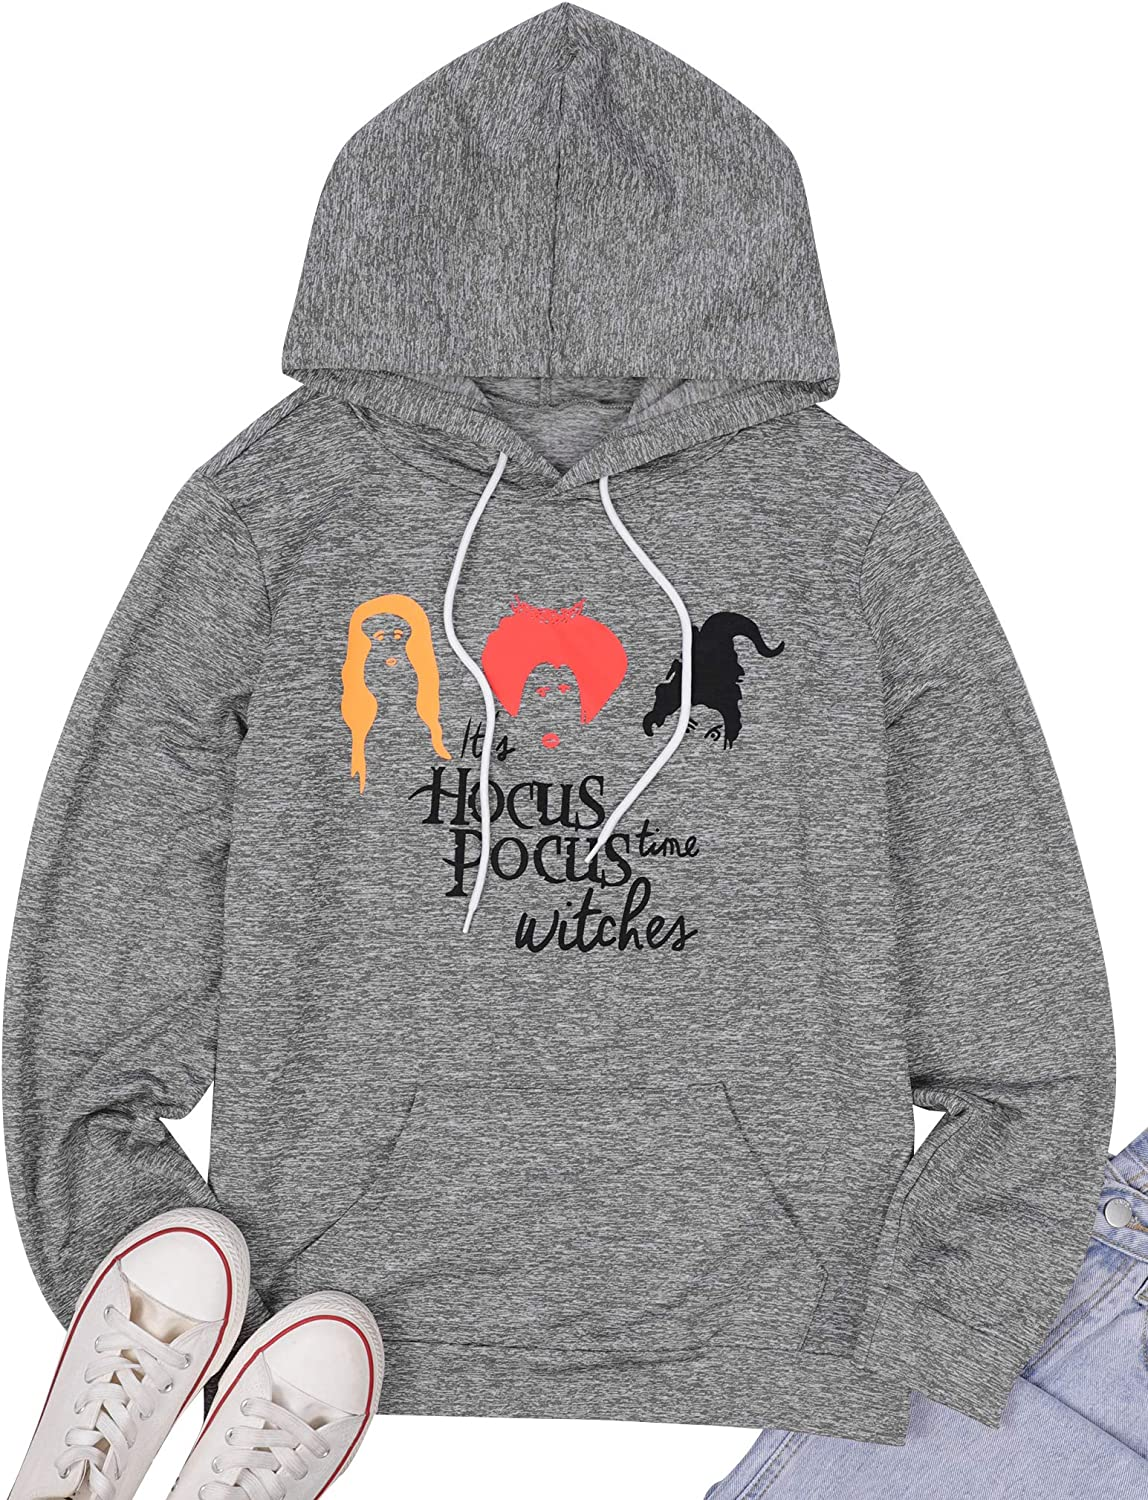 It's Women Hocus Pocus Time Witches Halloween Hooded Sweatshirt Sanderson Sister Graphic Long Sleeve Pocket Pullover Tops